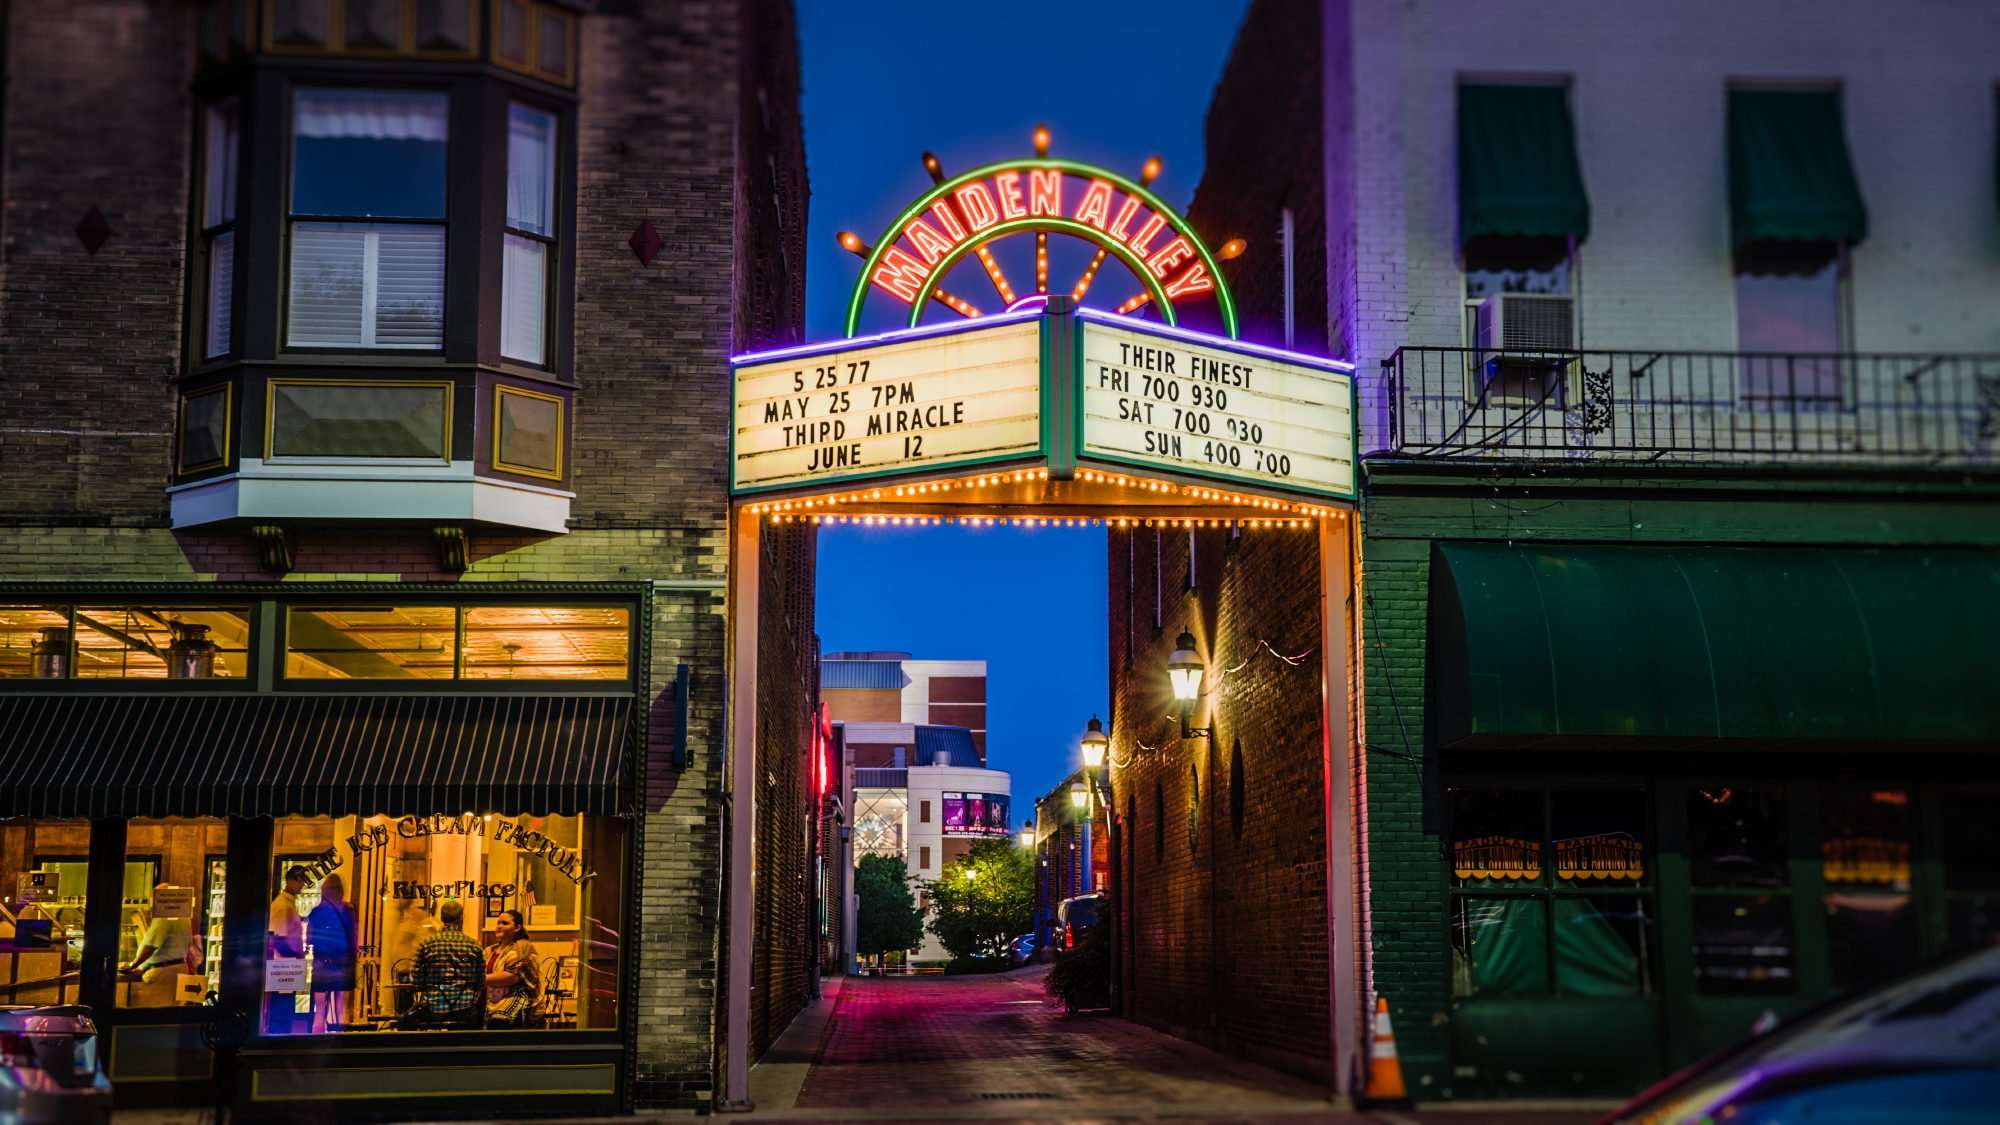 June 2, 2017 - Maiden Alley Cinema marquee next to The Ice Cream Factory, downtown Paducah, FL/photonews247.com